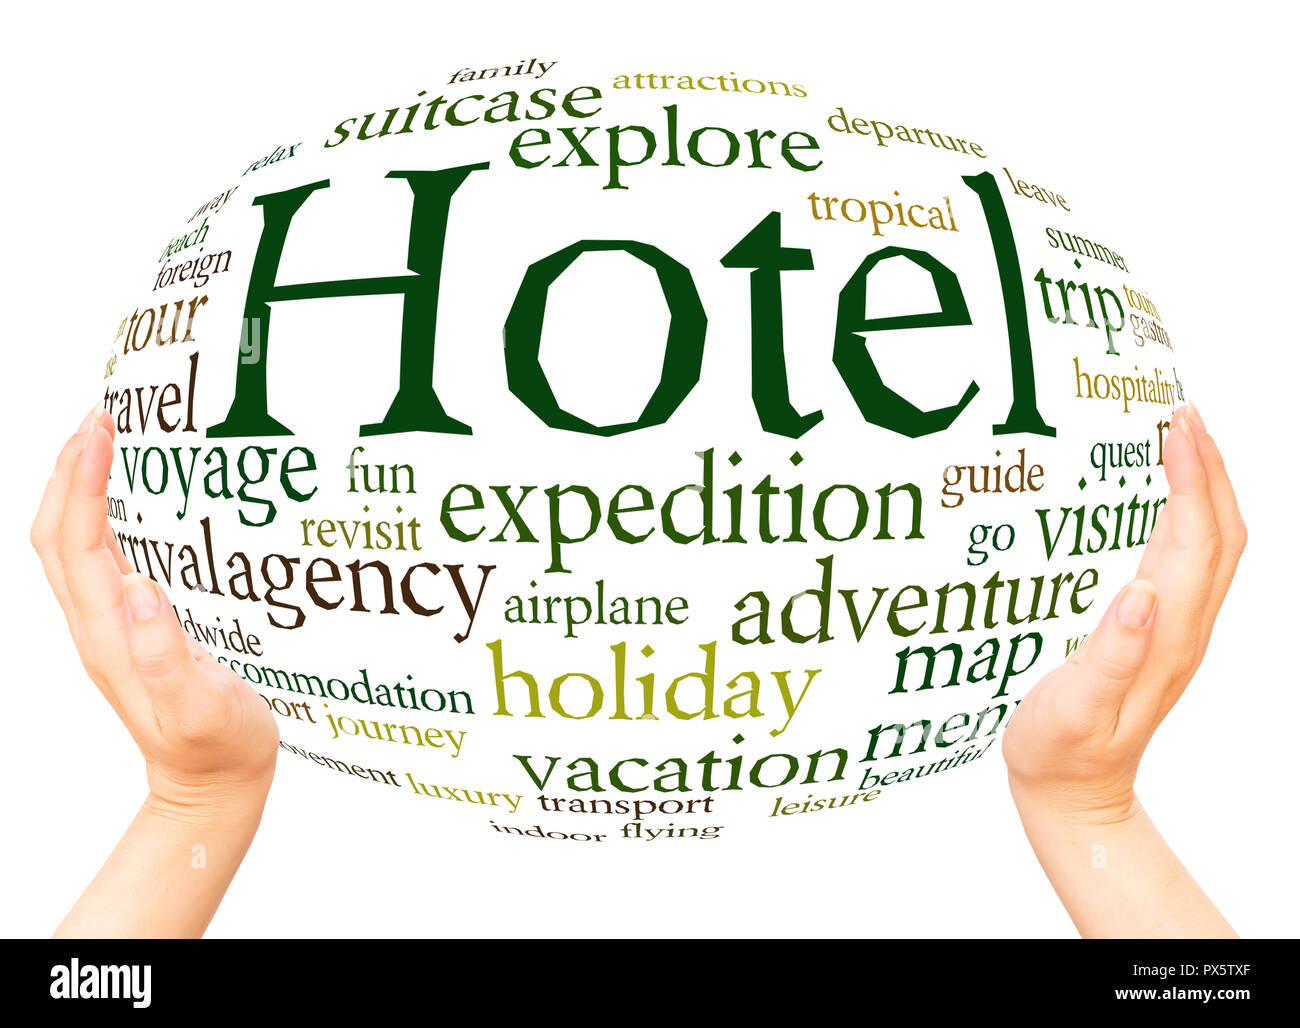 Hotel word cloud hand sphere concept on white background. - Stock Image